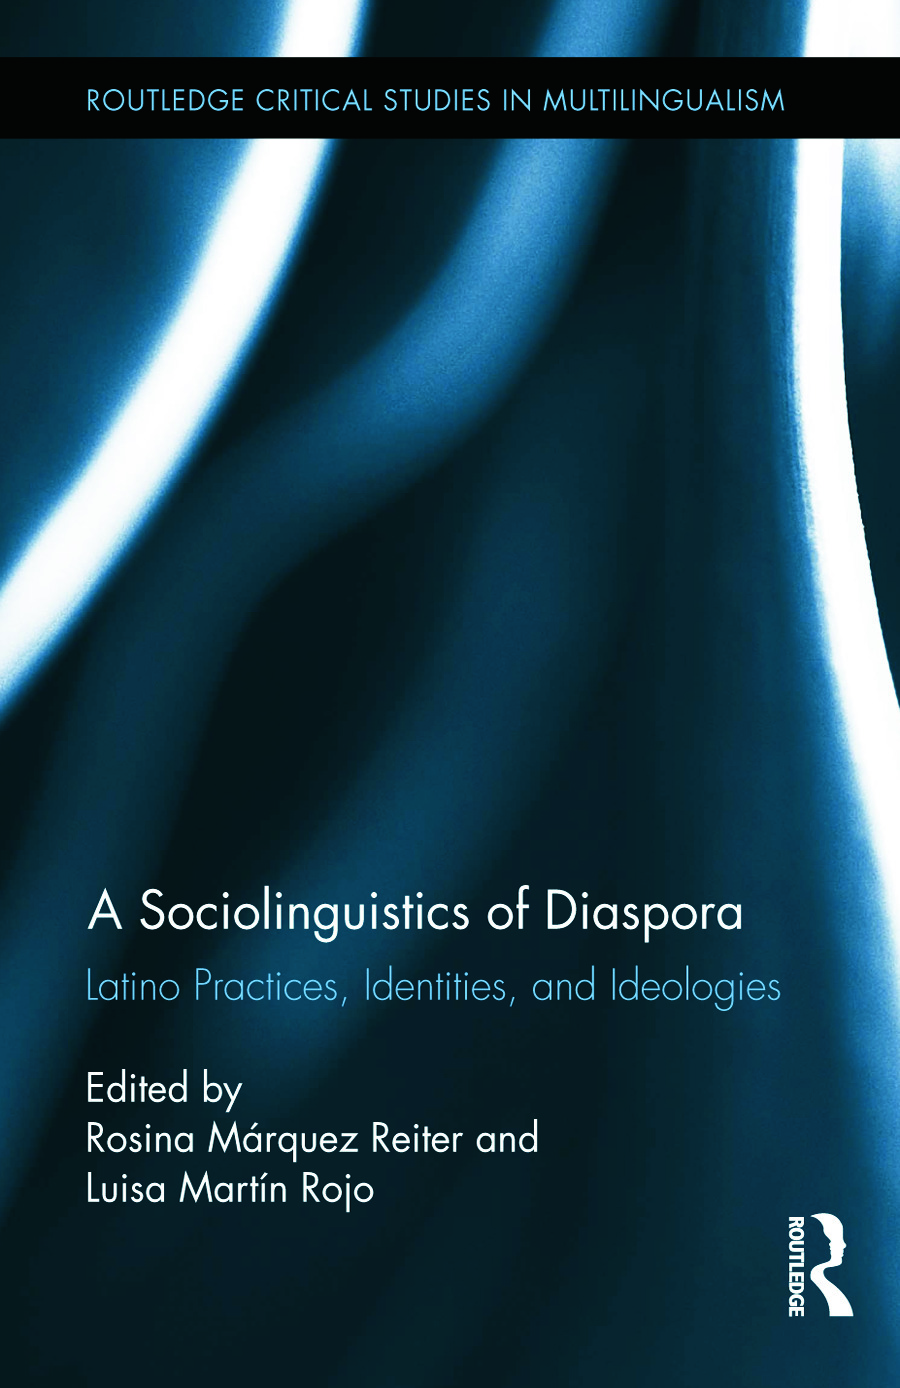 A Sociolinguistics of Diaspora: Latino Practices, Identities, and Ideologies book cover